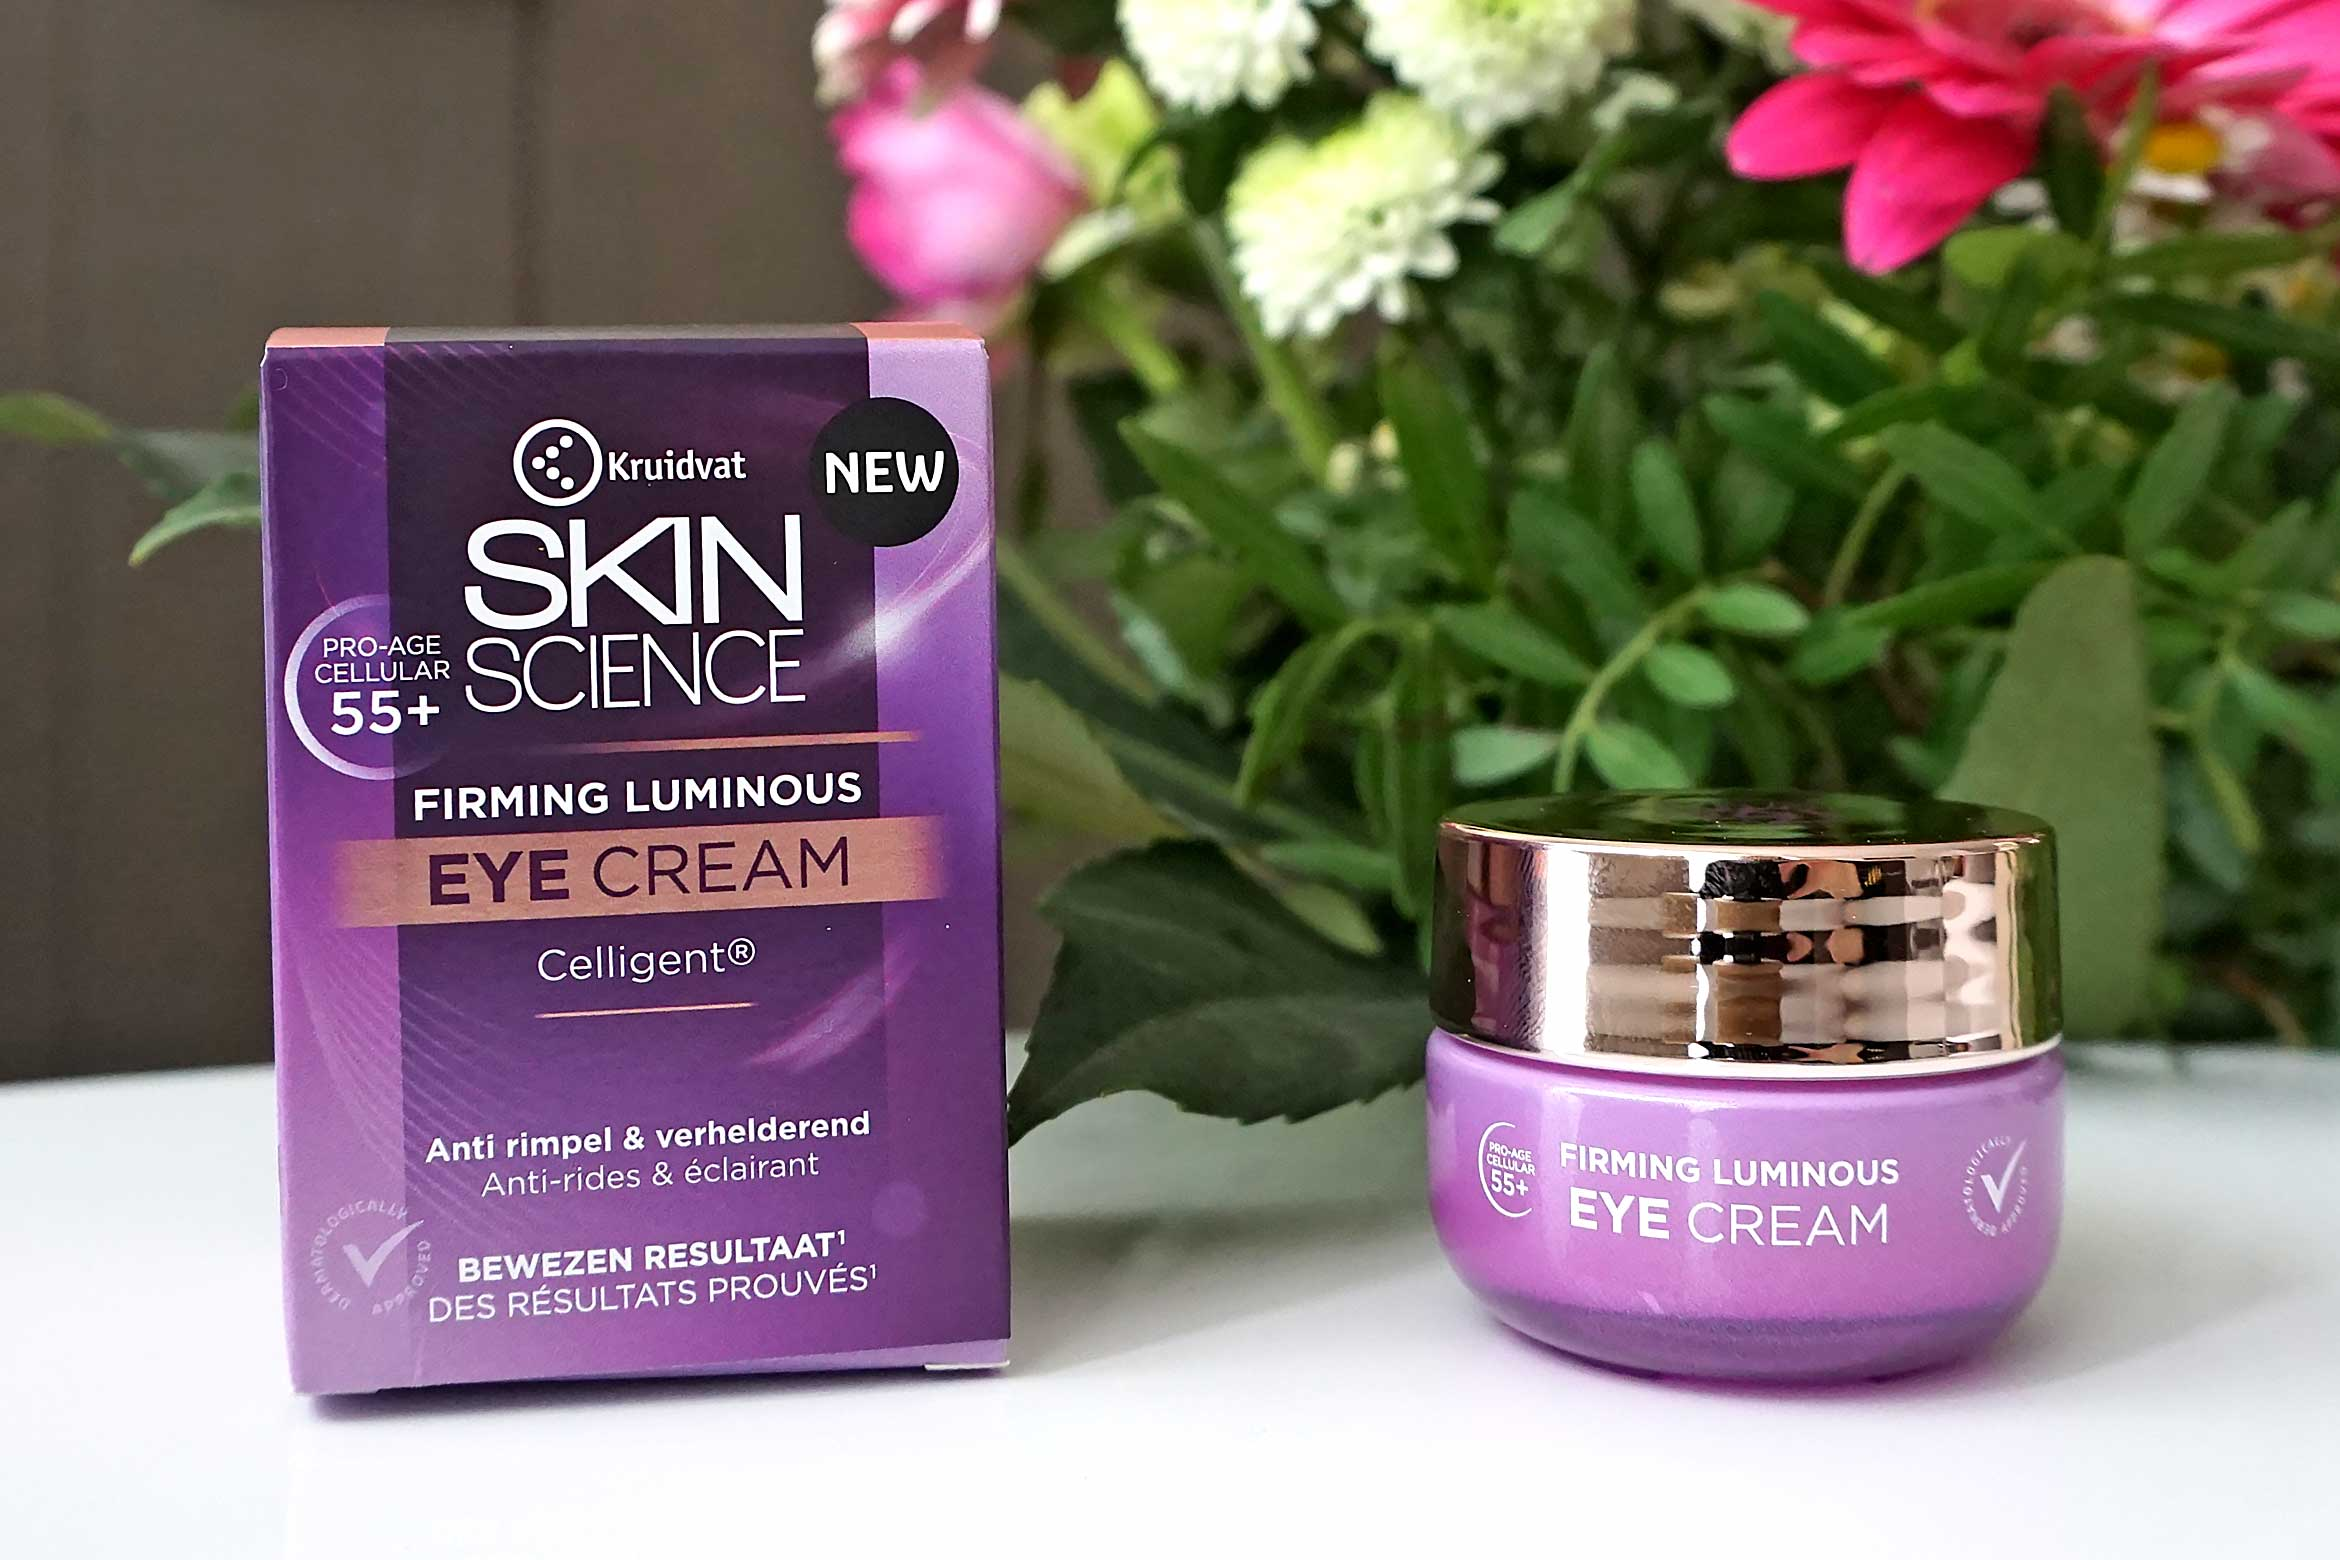 kruidvat skin science firming luminous 55+ eye cream review